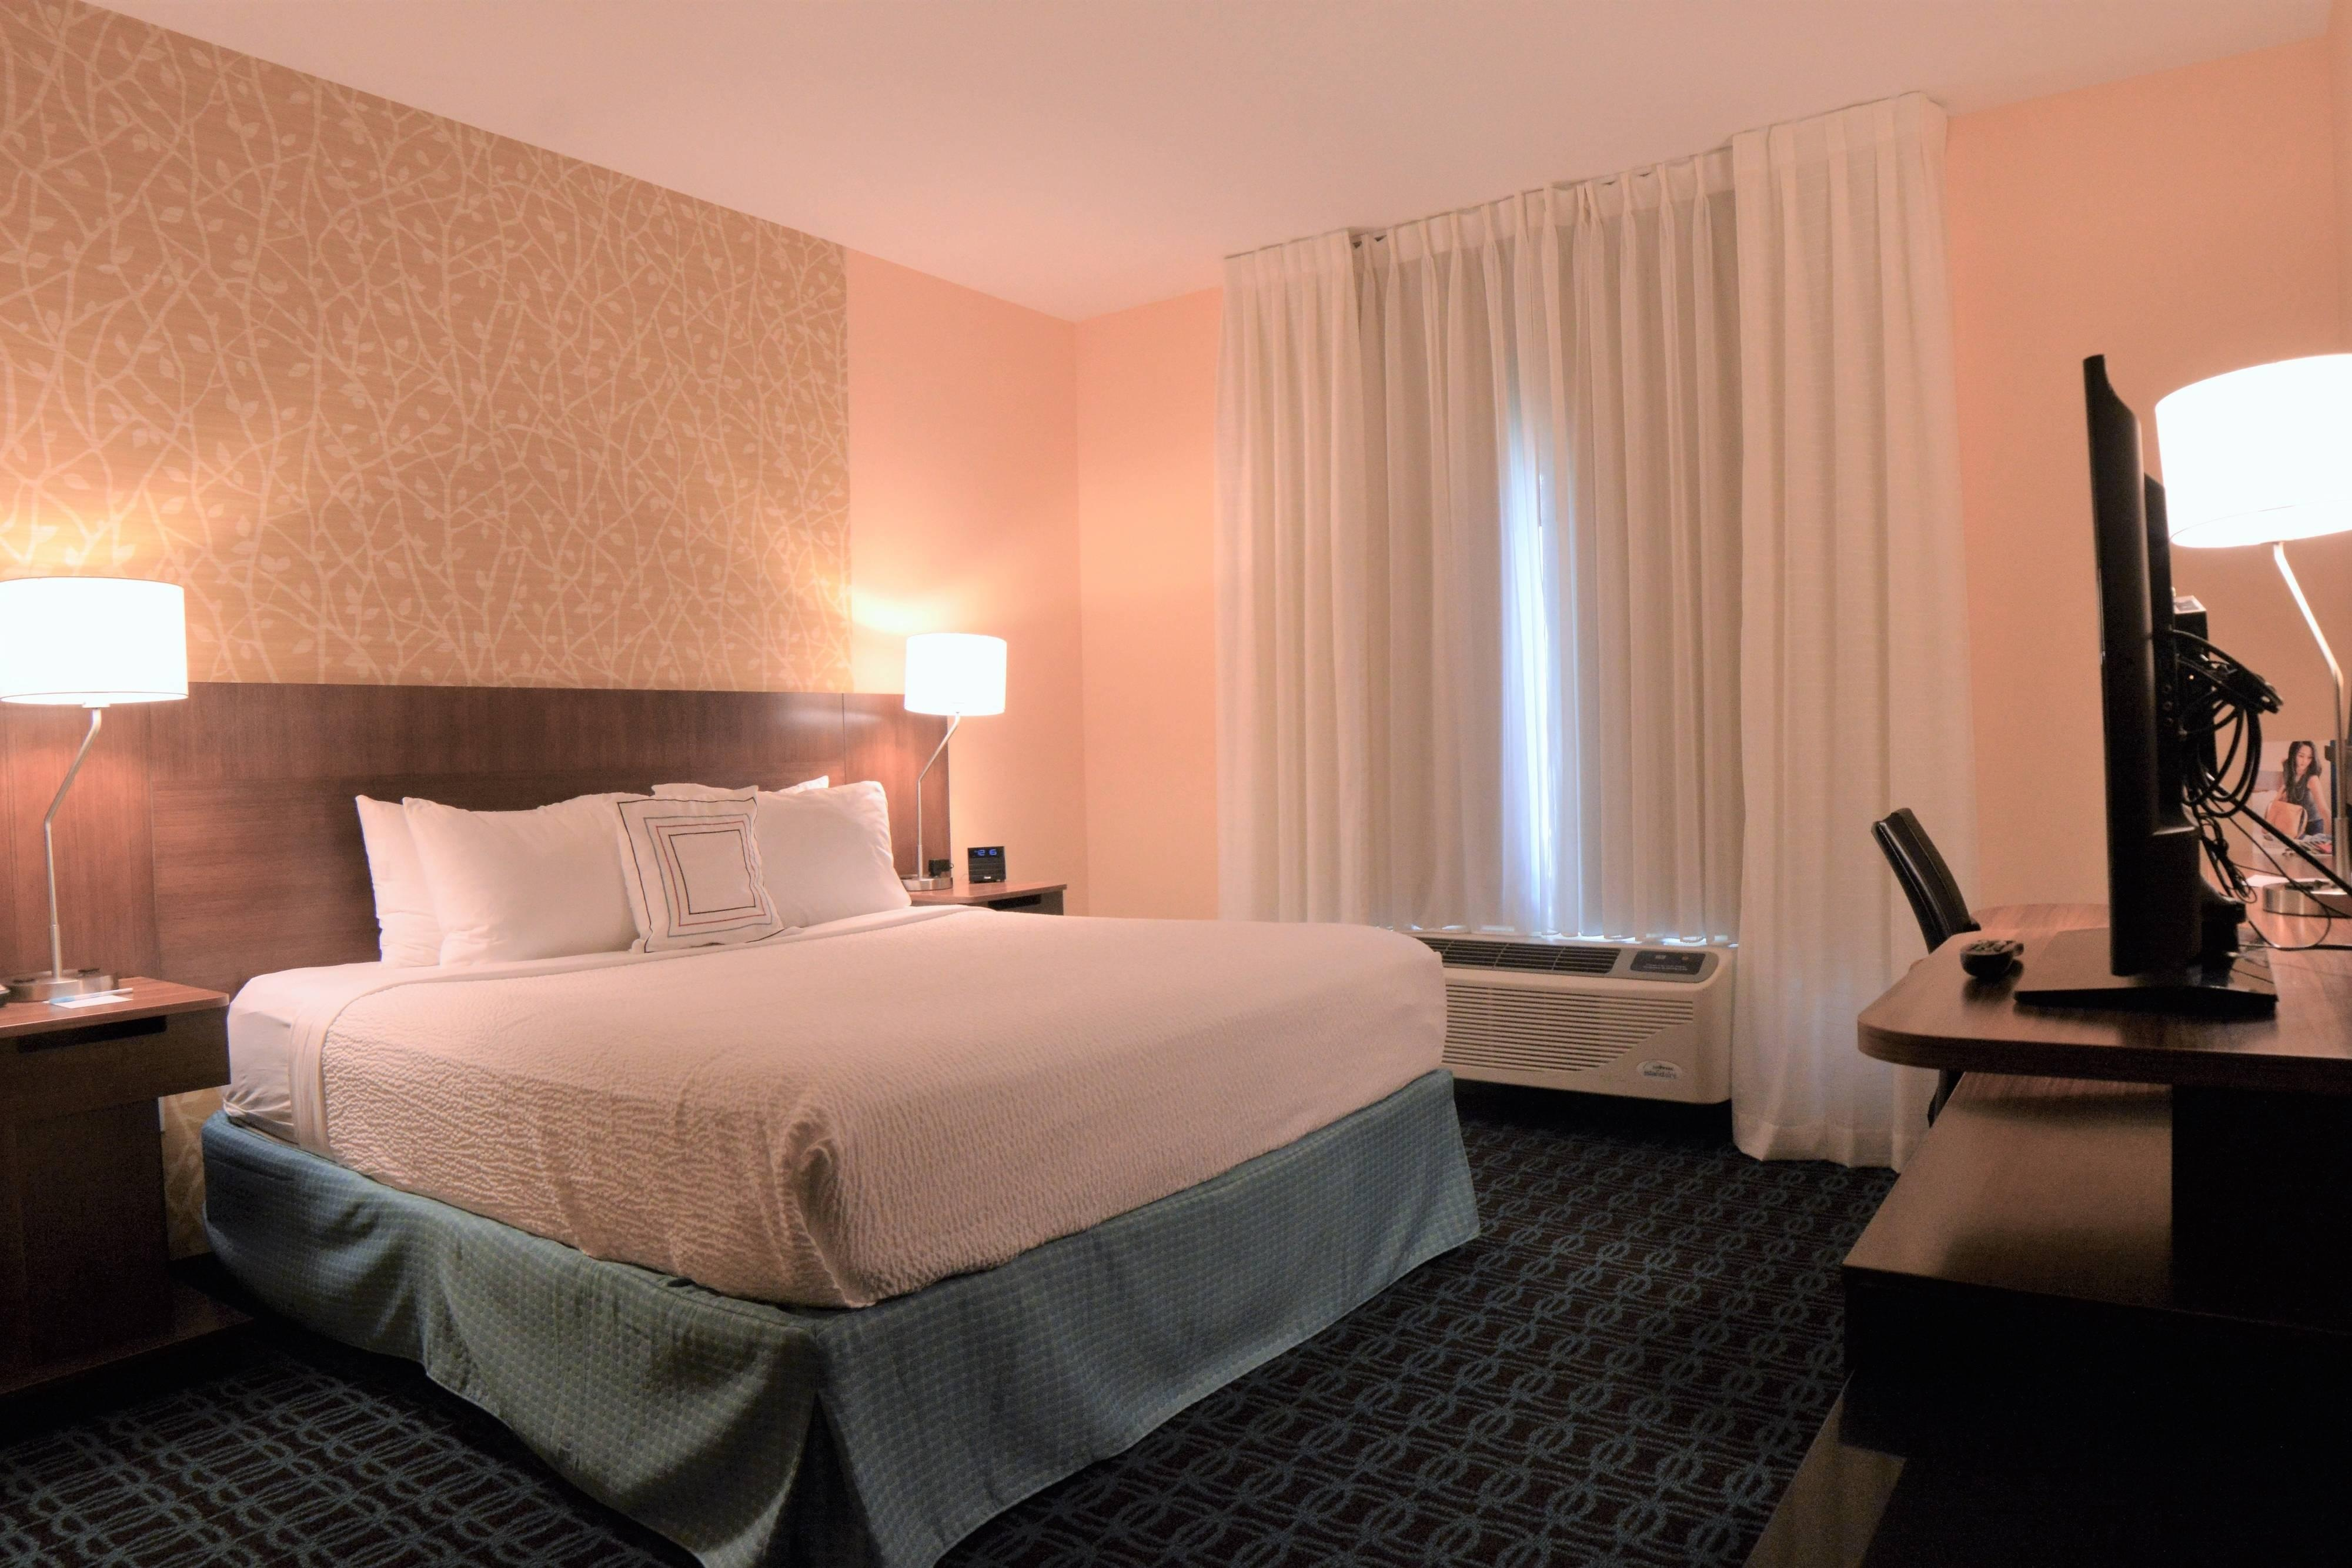 Dunn I-95 Hotel | Fairfield Inn & Suites Dunn I-95